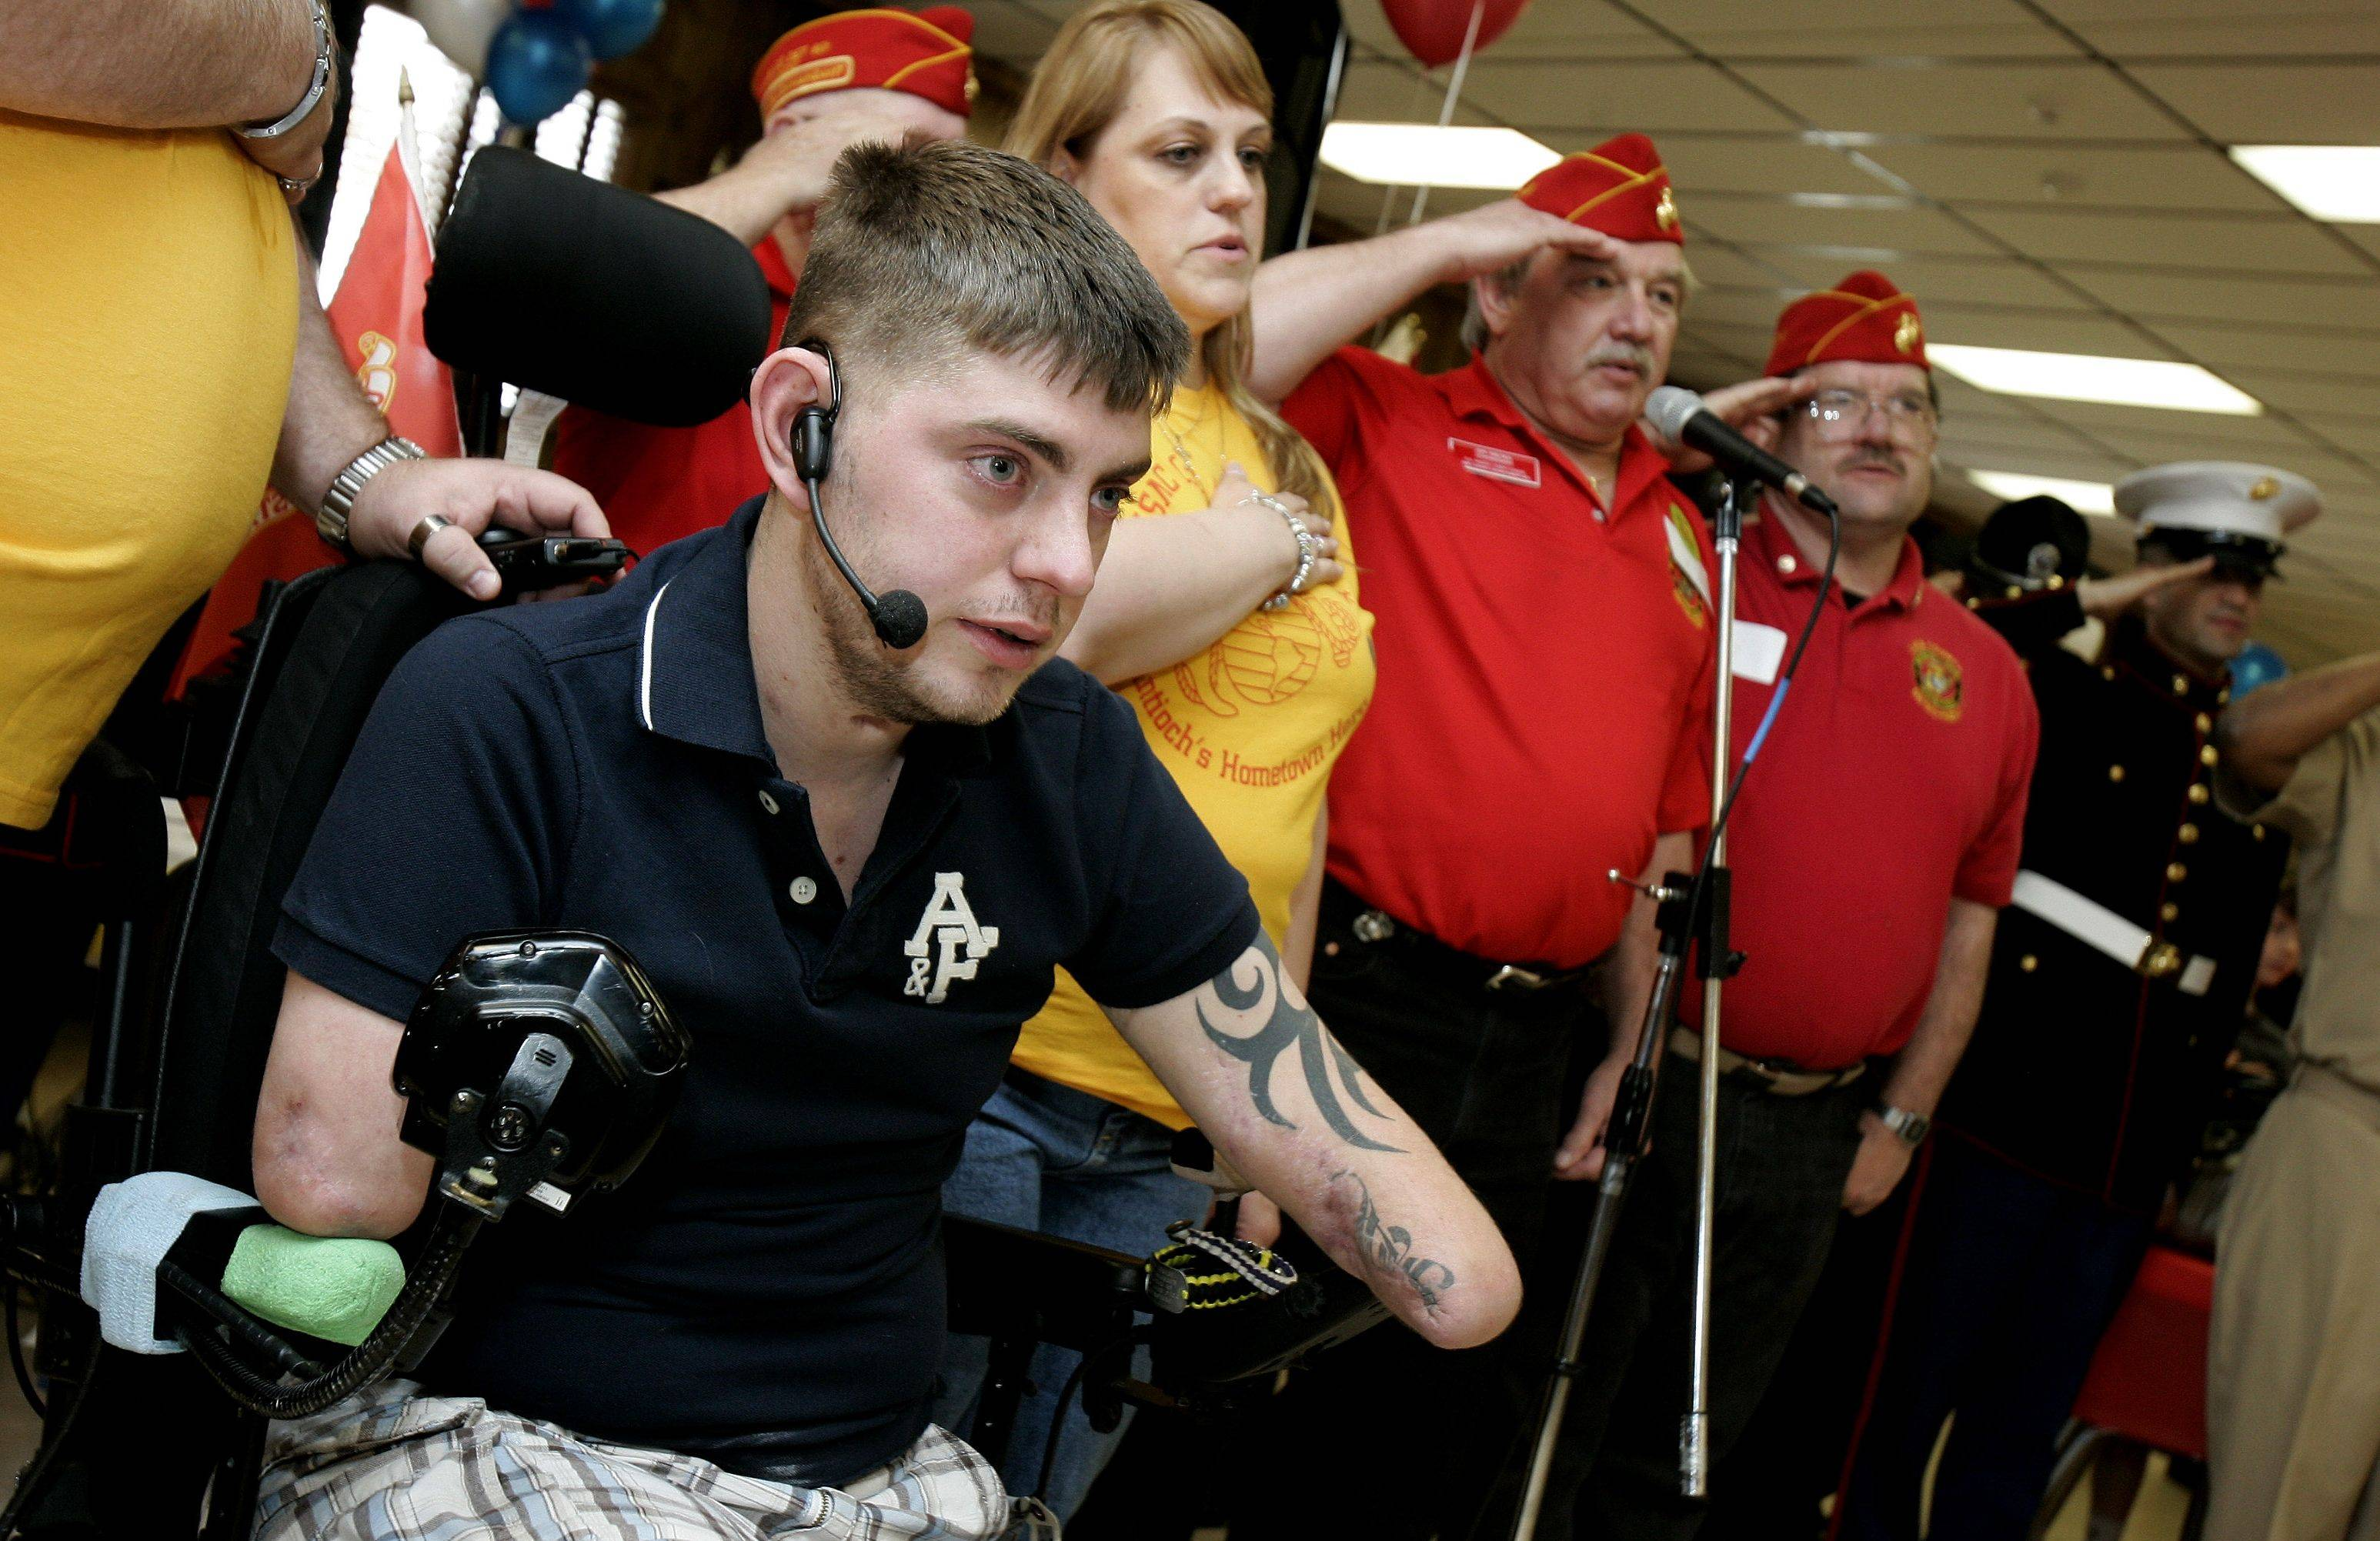 U.S. Marine Cpl. John Peck recites the Pledge of Allegiance, surrounded by the Marine Corps League 801, as he was honored in Antioch Monday after returning from serving in Afghanistan. Peck lost four limbs in Afghanistan after stepping on an IED.